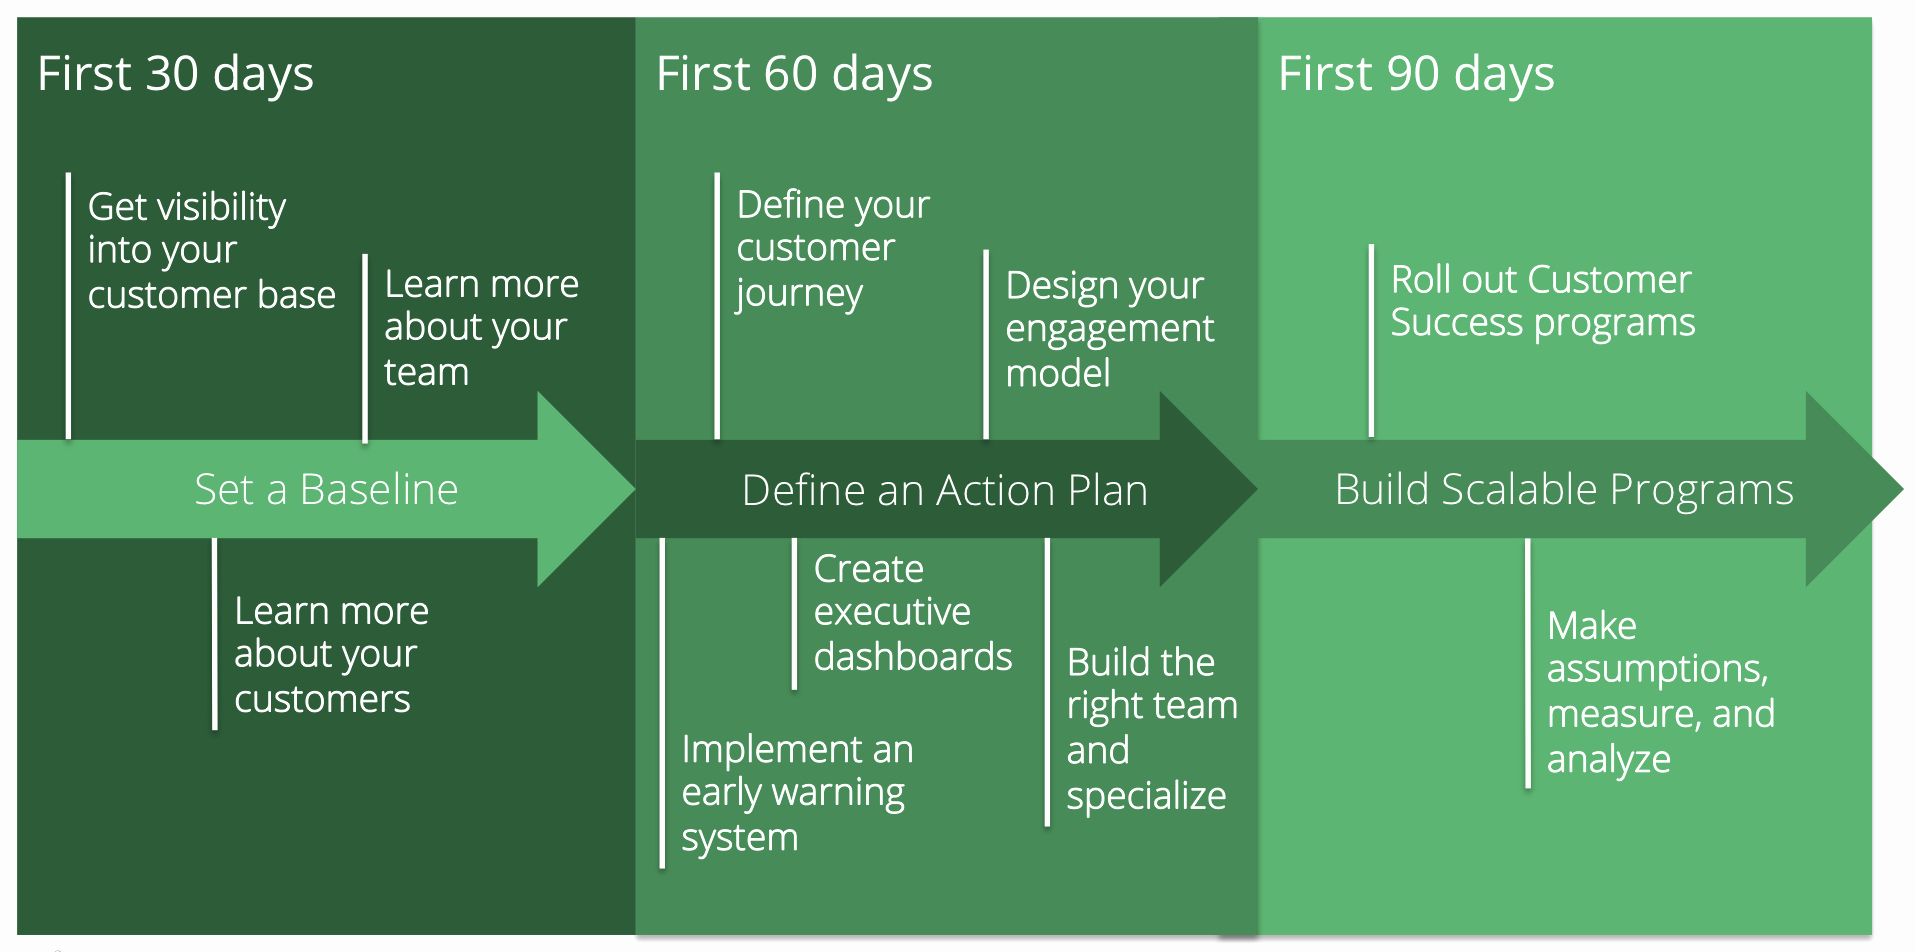 90 Day Action Plan Templates Fresh Your 90 Day Customer Success Plan